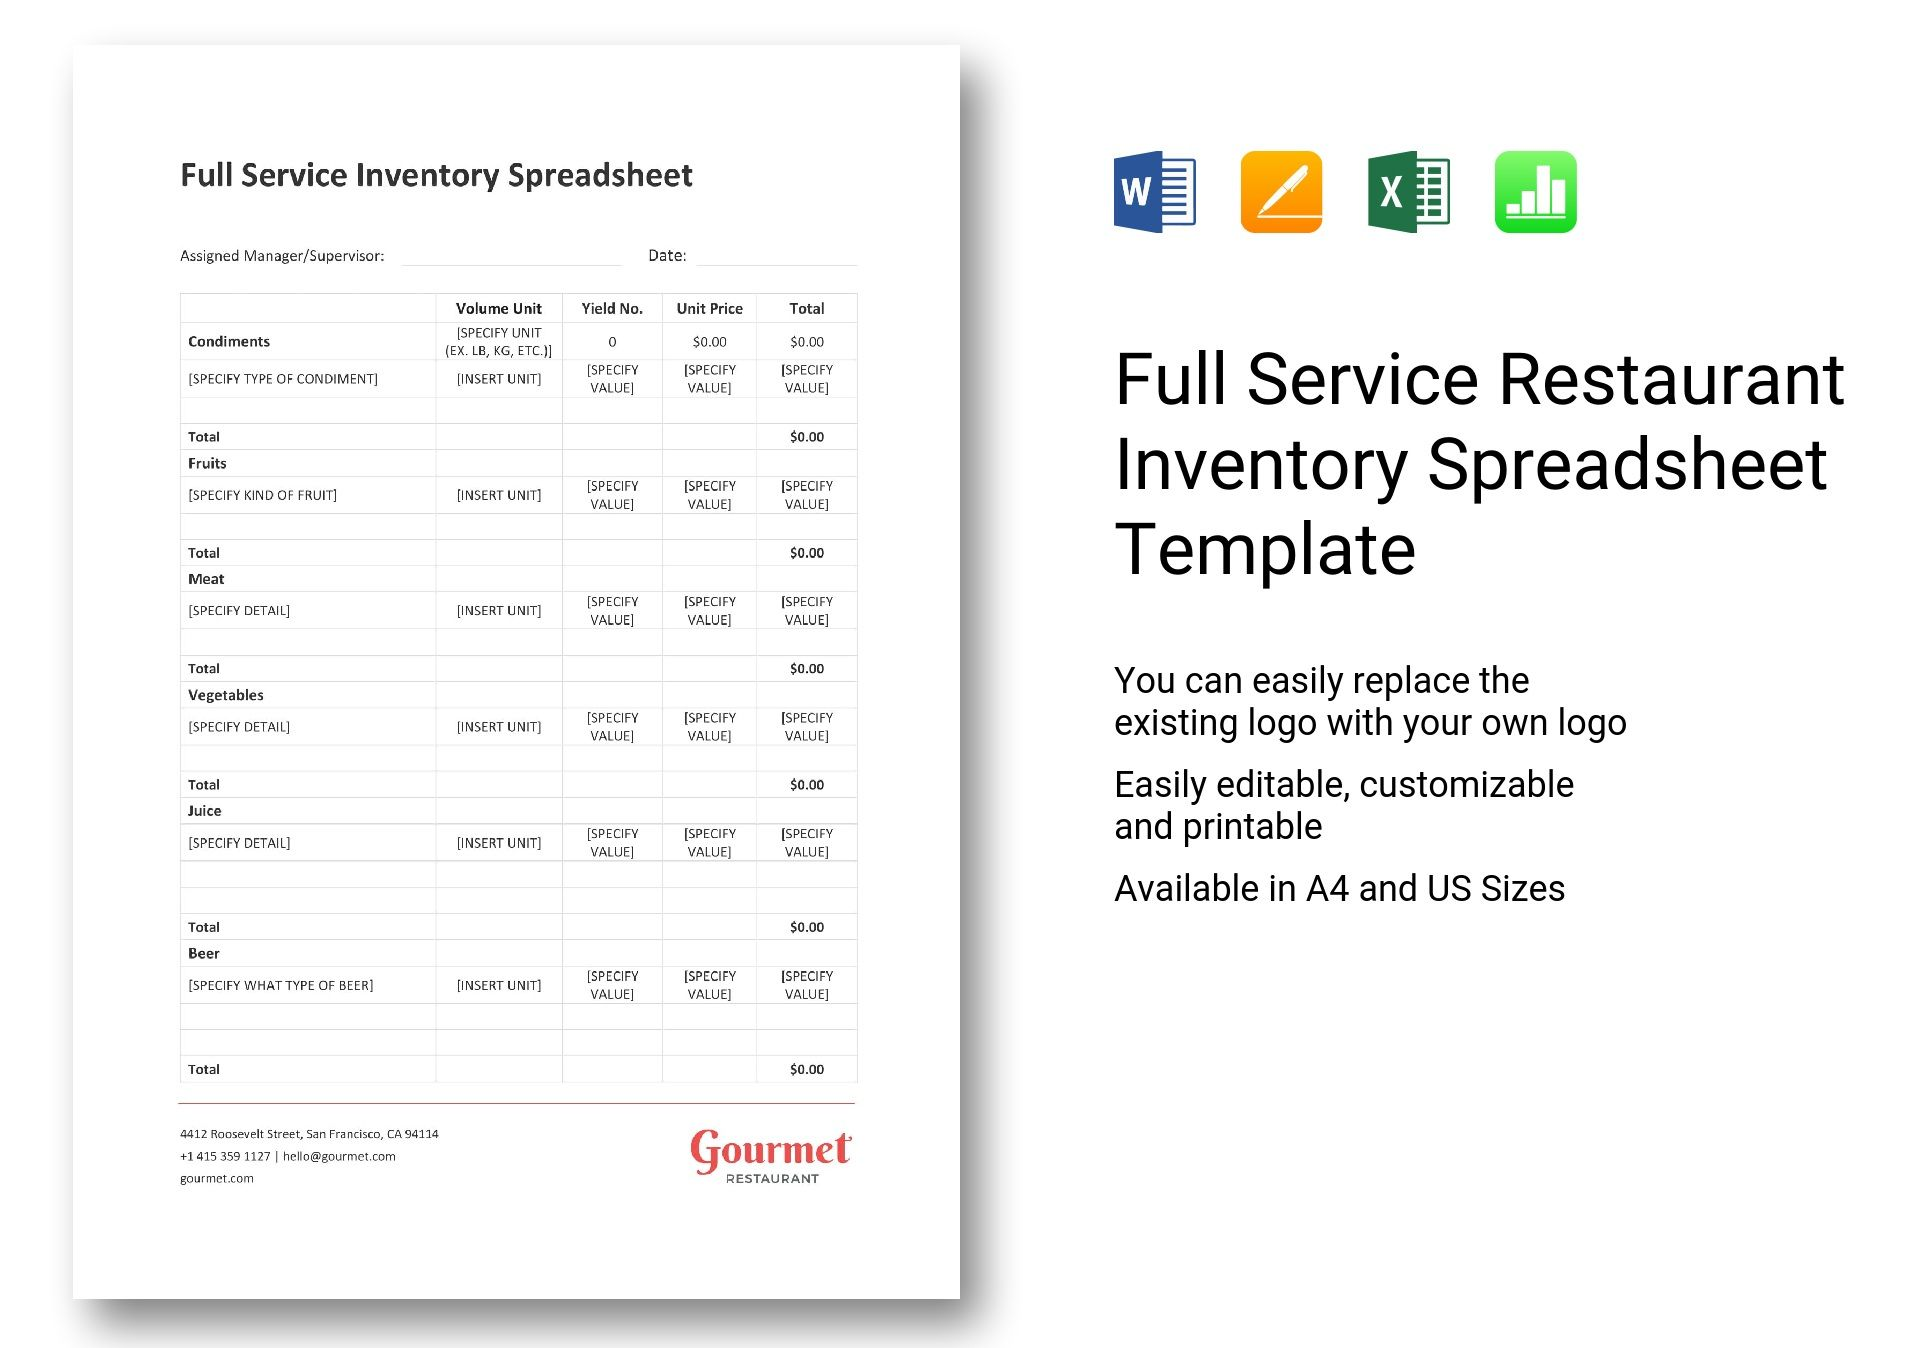 Full Service Restaurant Inventory Spreadsheet